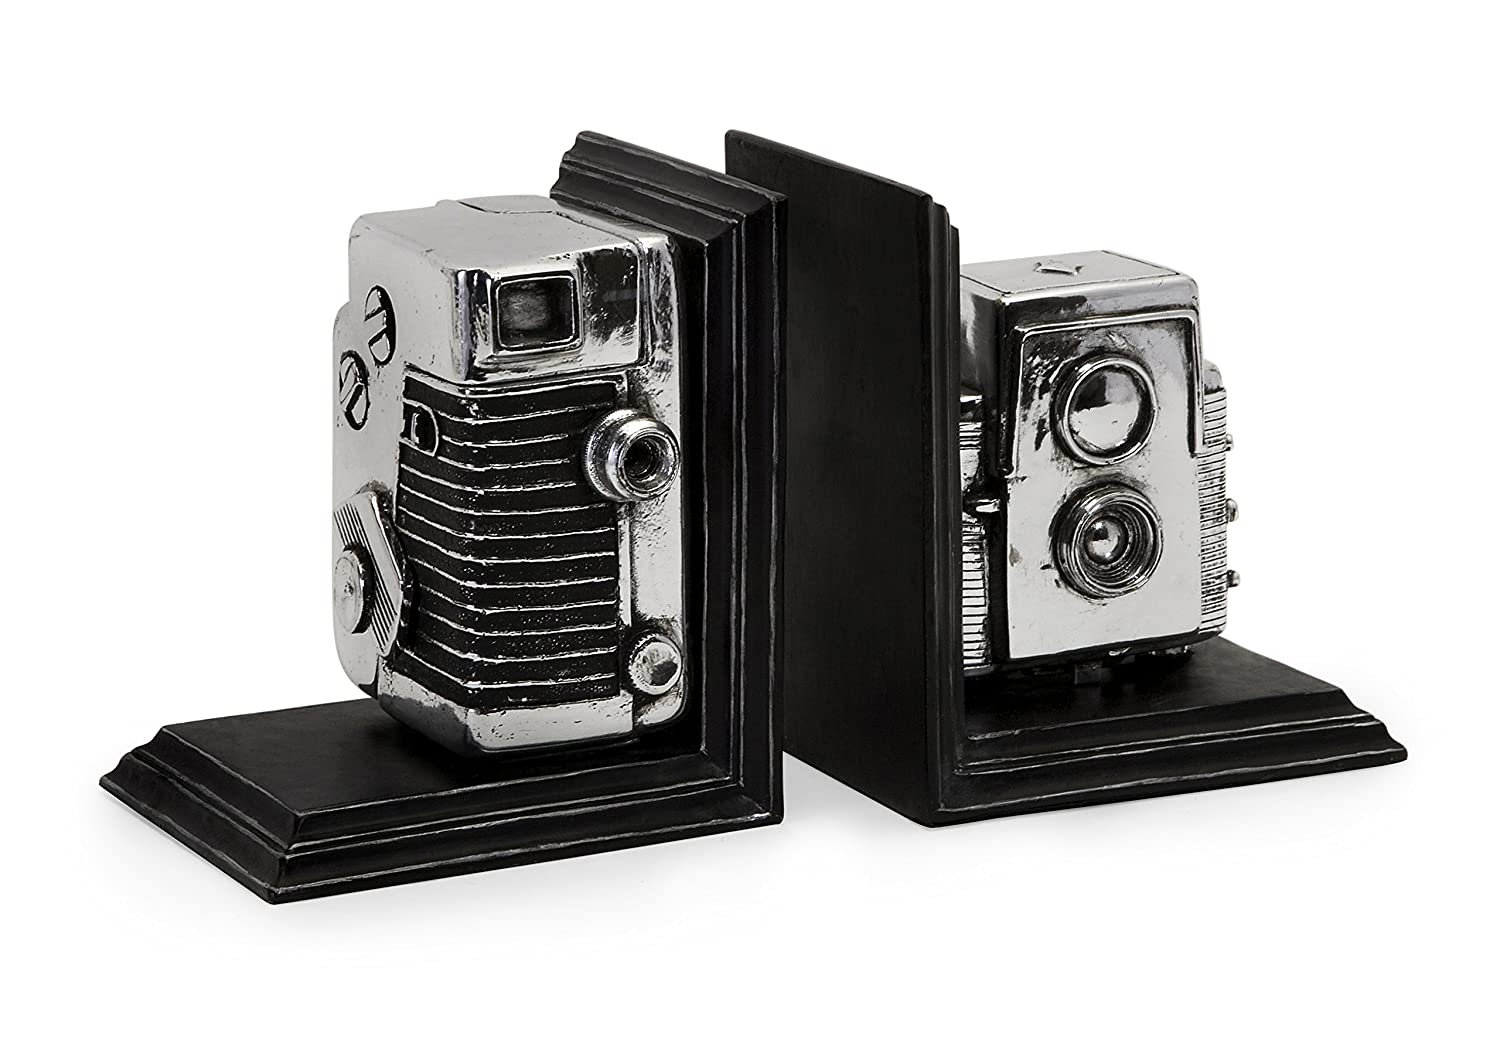 IMAX 36133 Vintage Camera Bookends - Decorative Bookends, Storage Boxes, Book Holders. Home Decor Accents